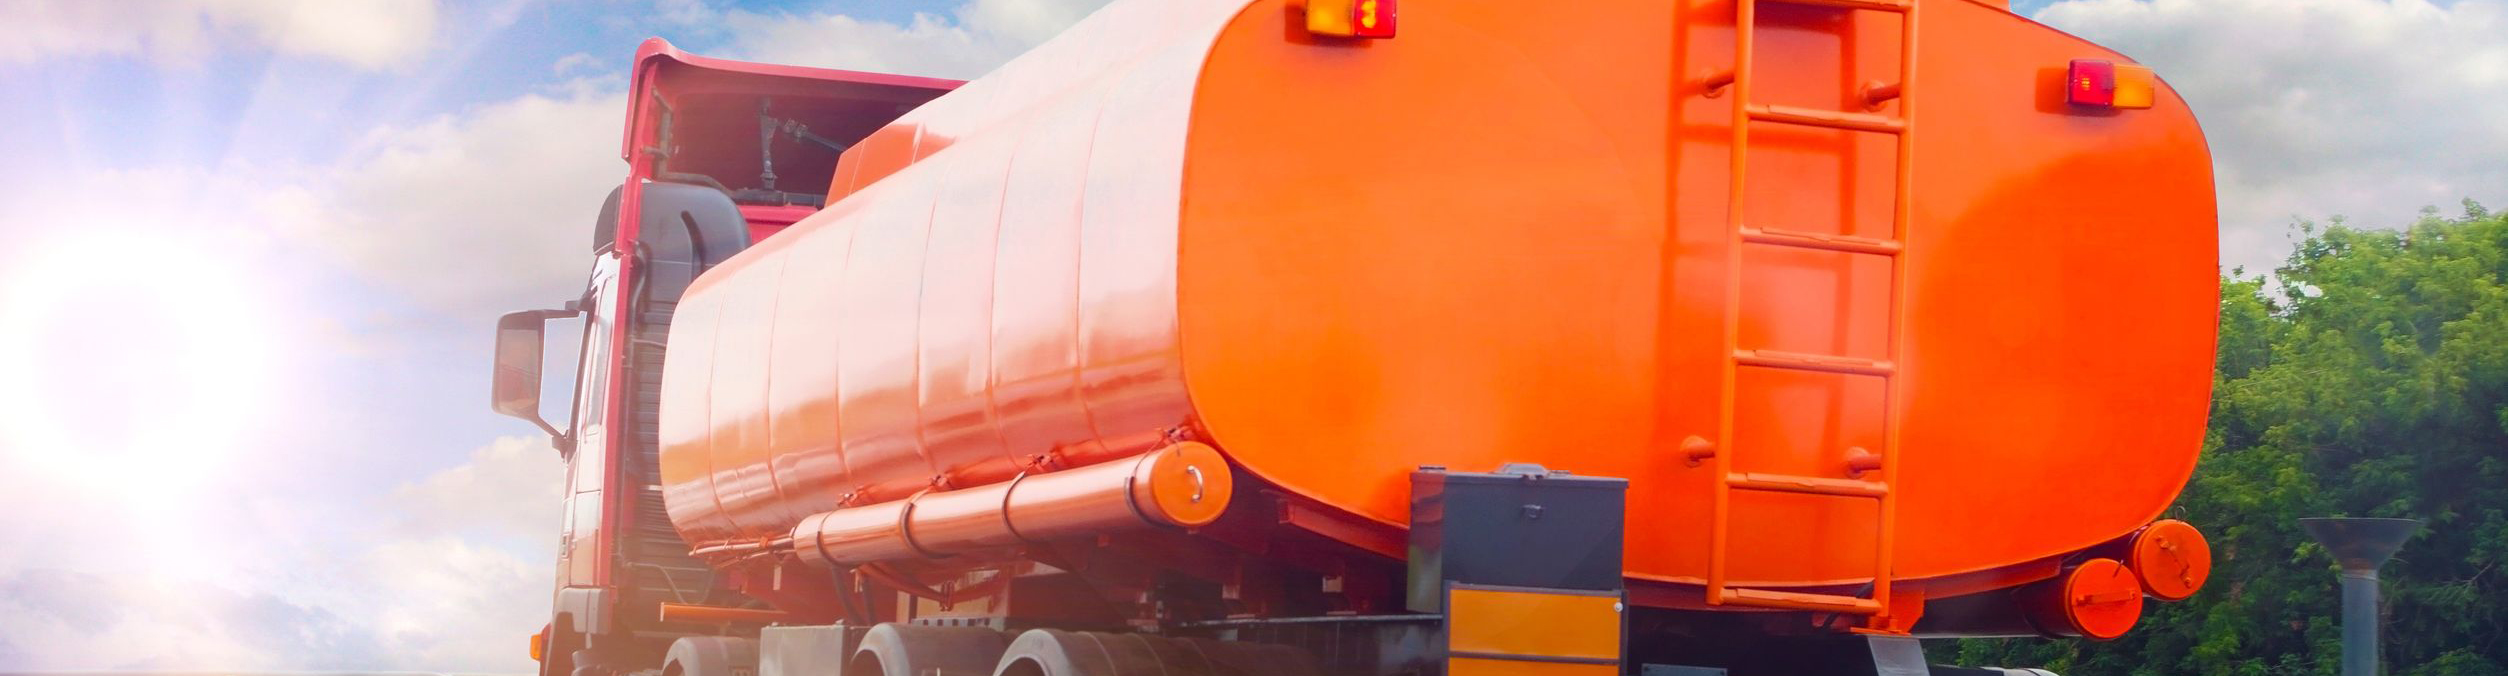 15462723 - big gas-tank truck goes on highway against the sky